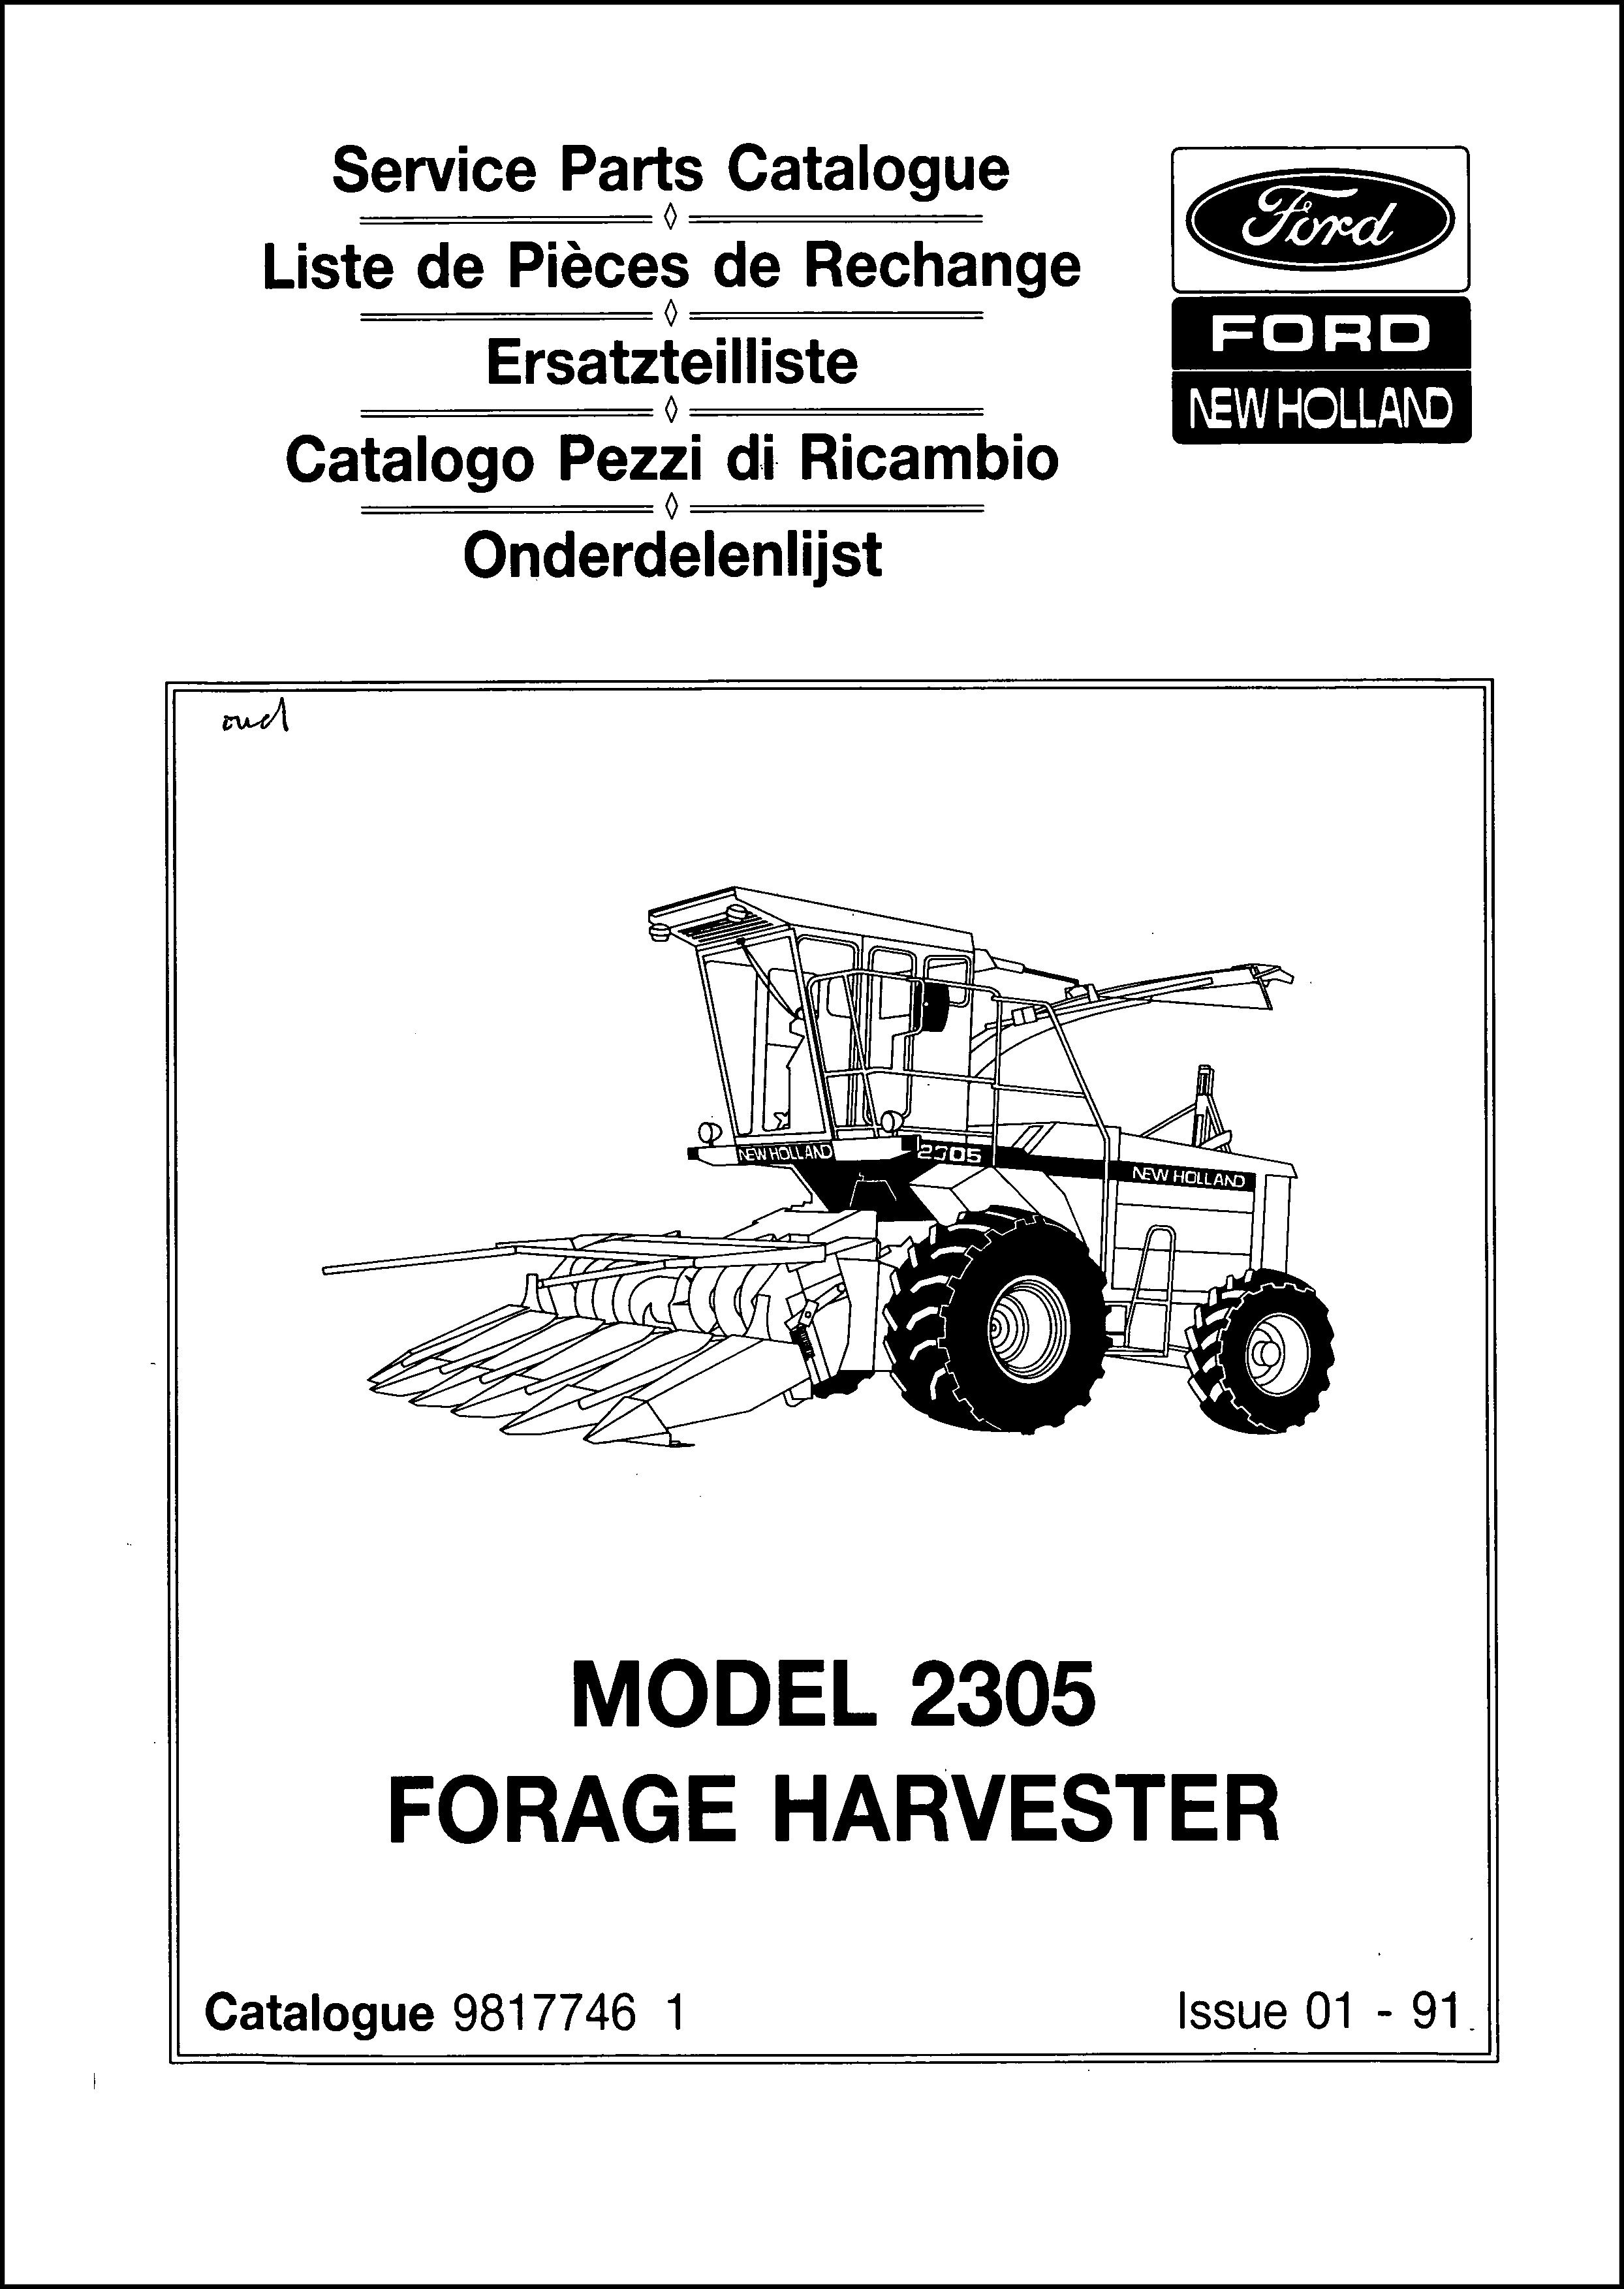 Ford New Holland Parts Manual For Service Forage